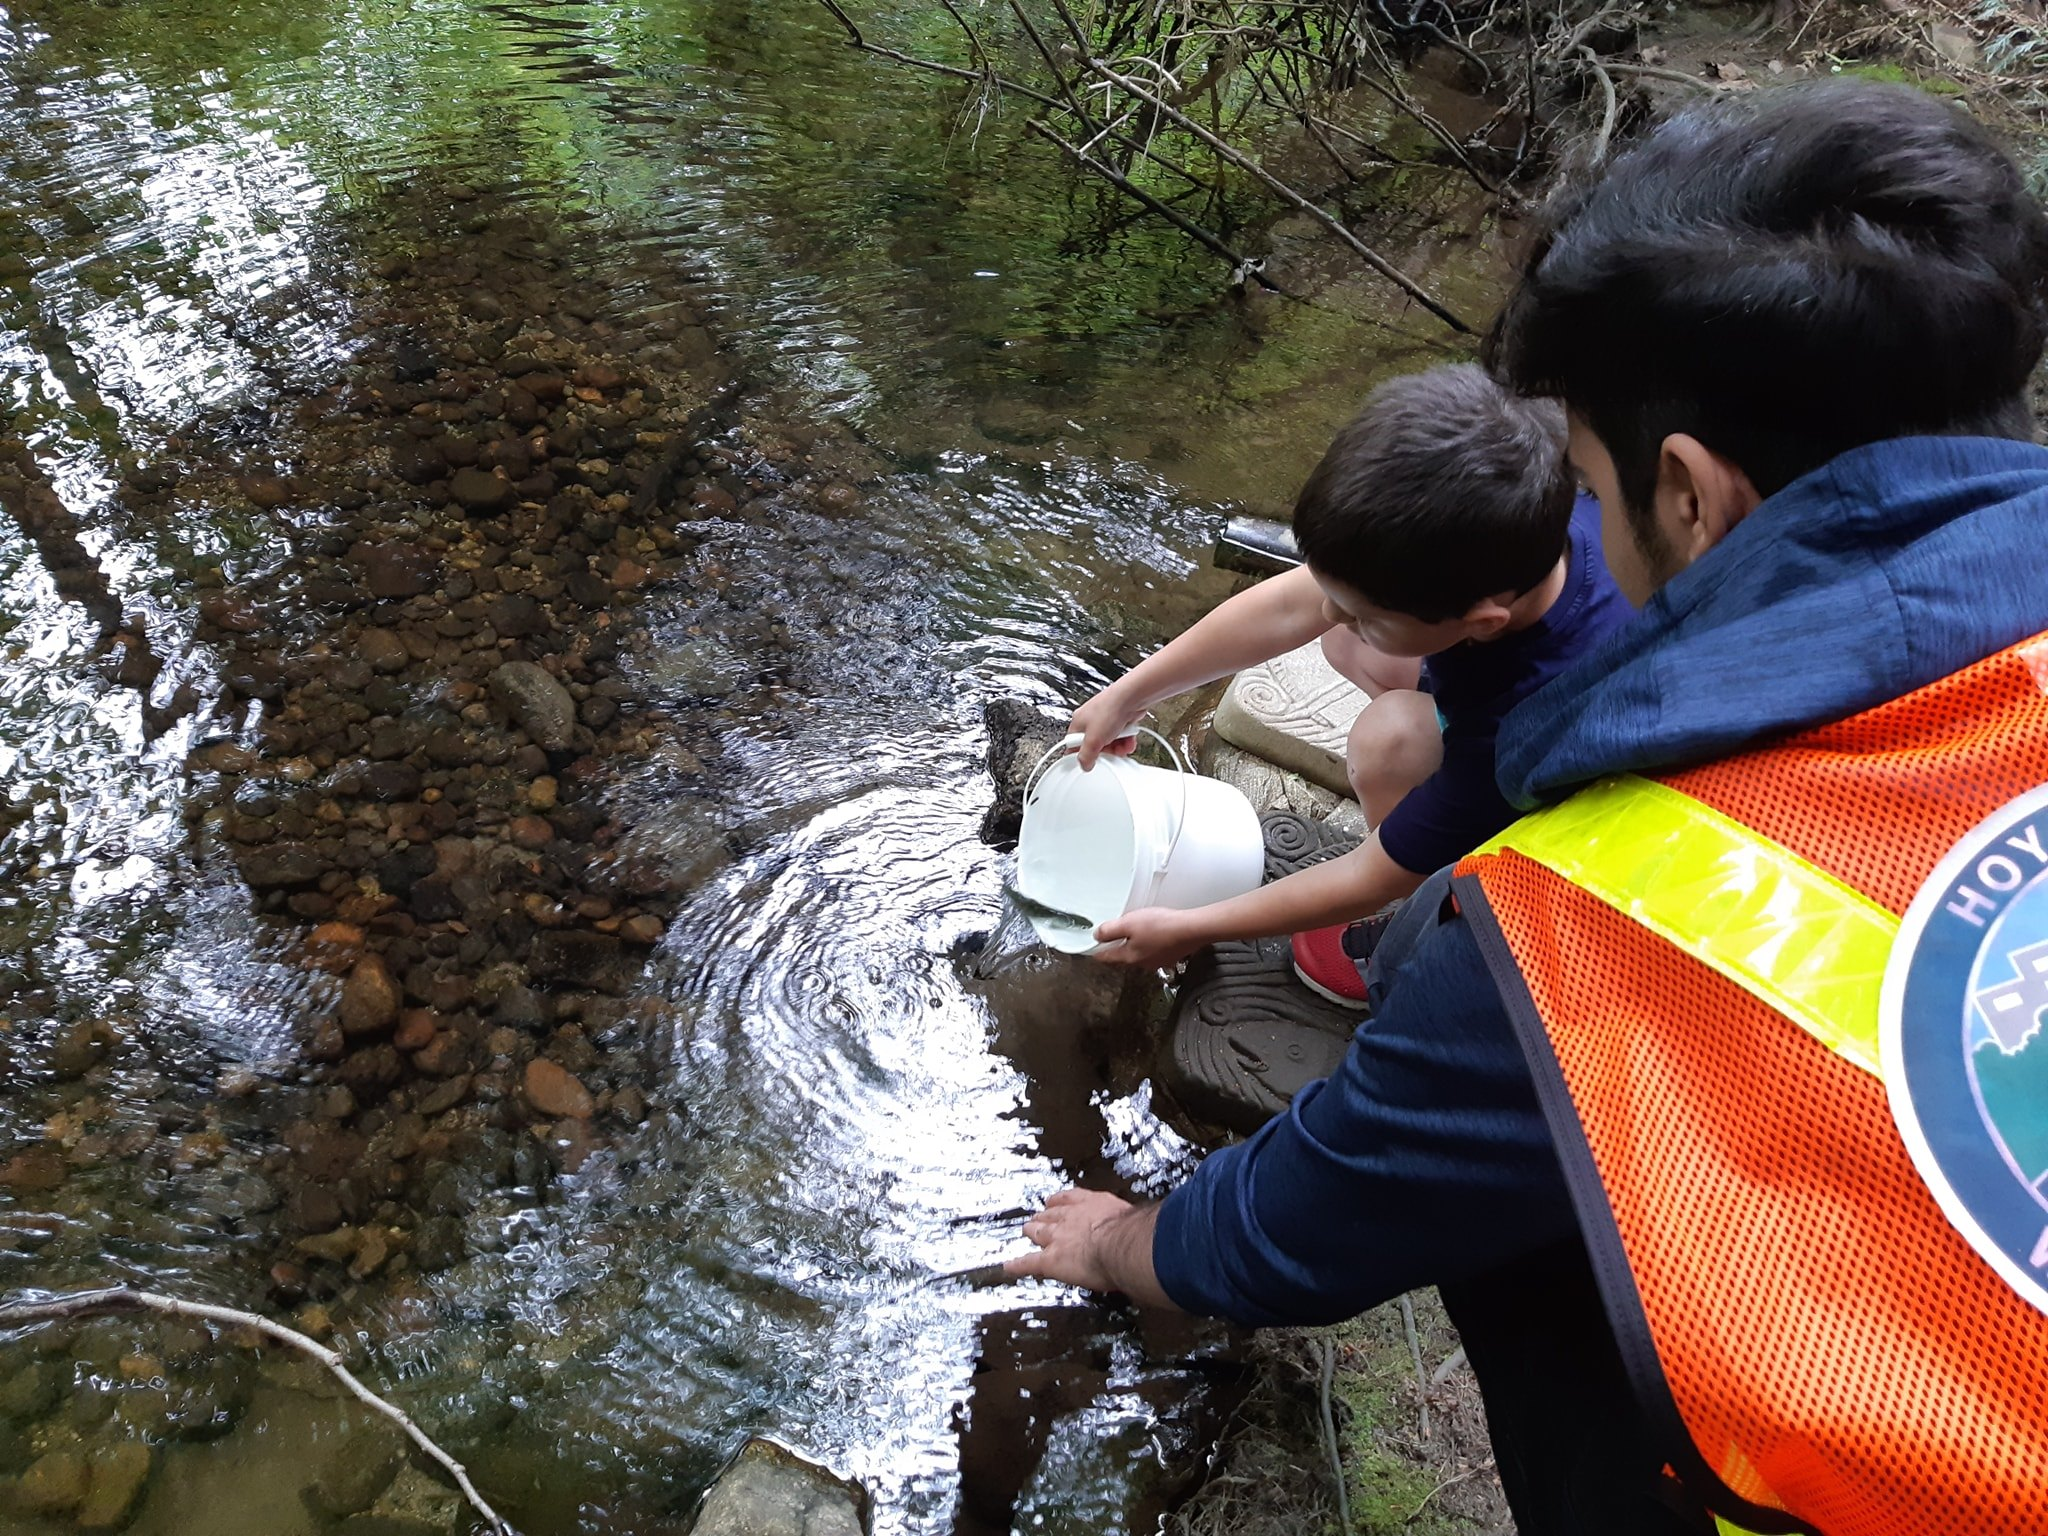 A student volunteer guides a boy in releasing a coho smolt at Salmon Leave Home